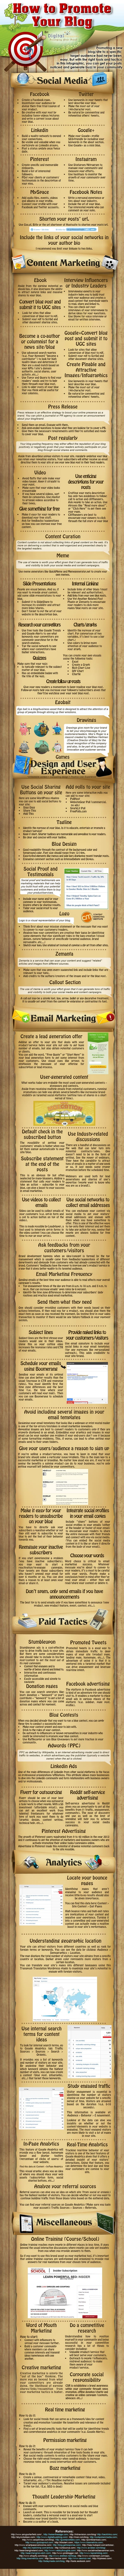 promote your blog infographic